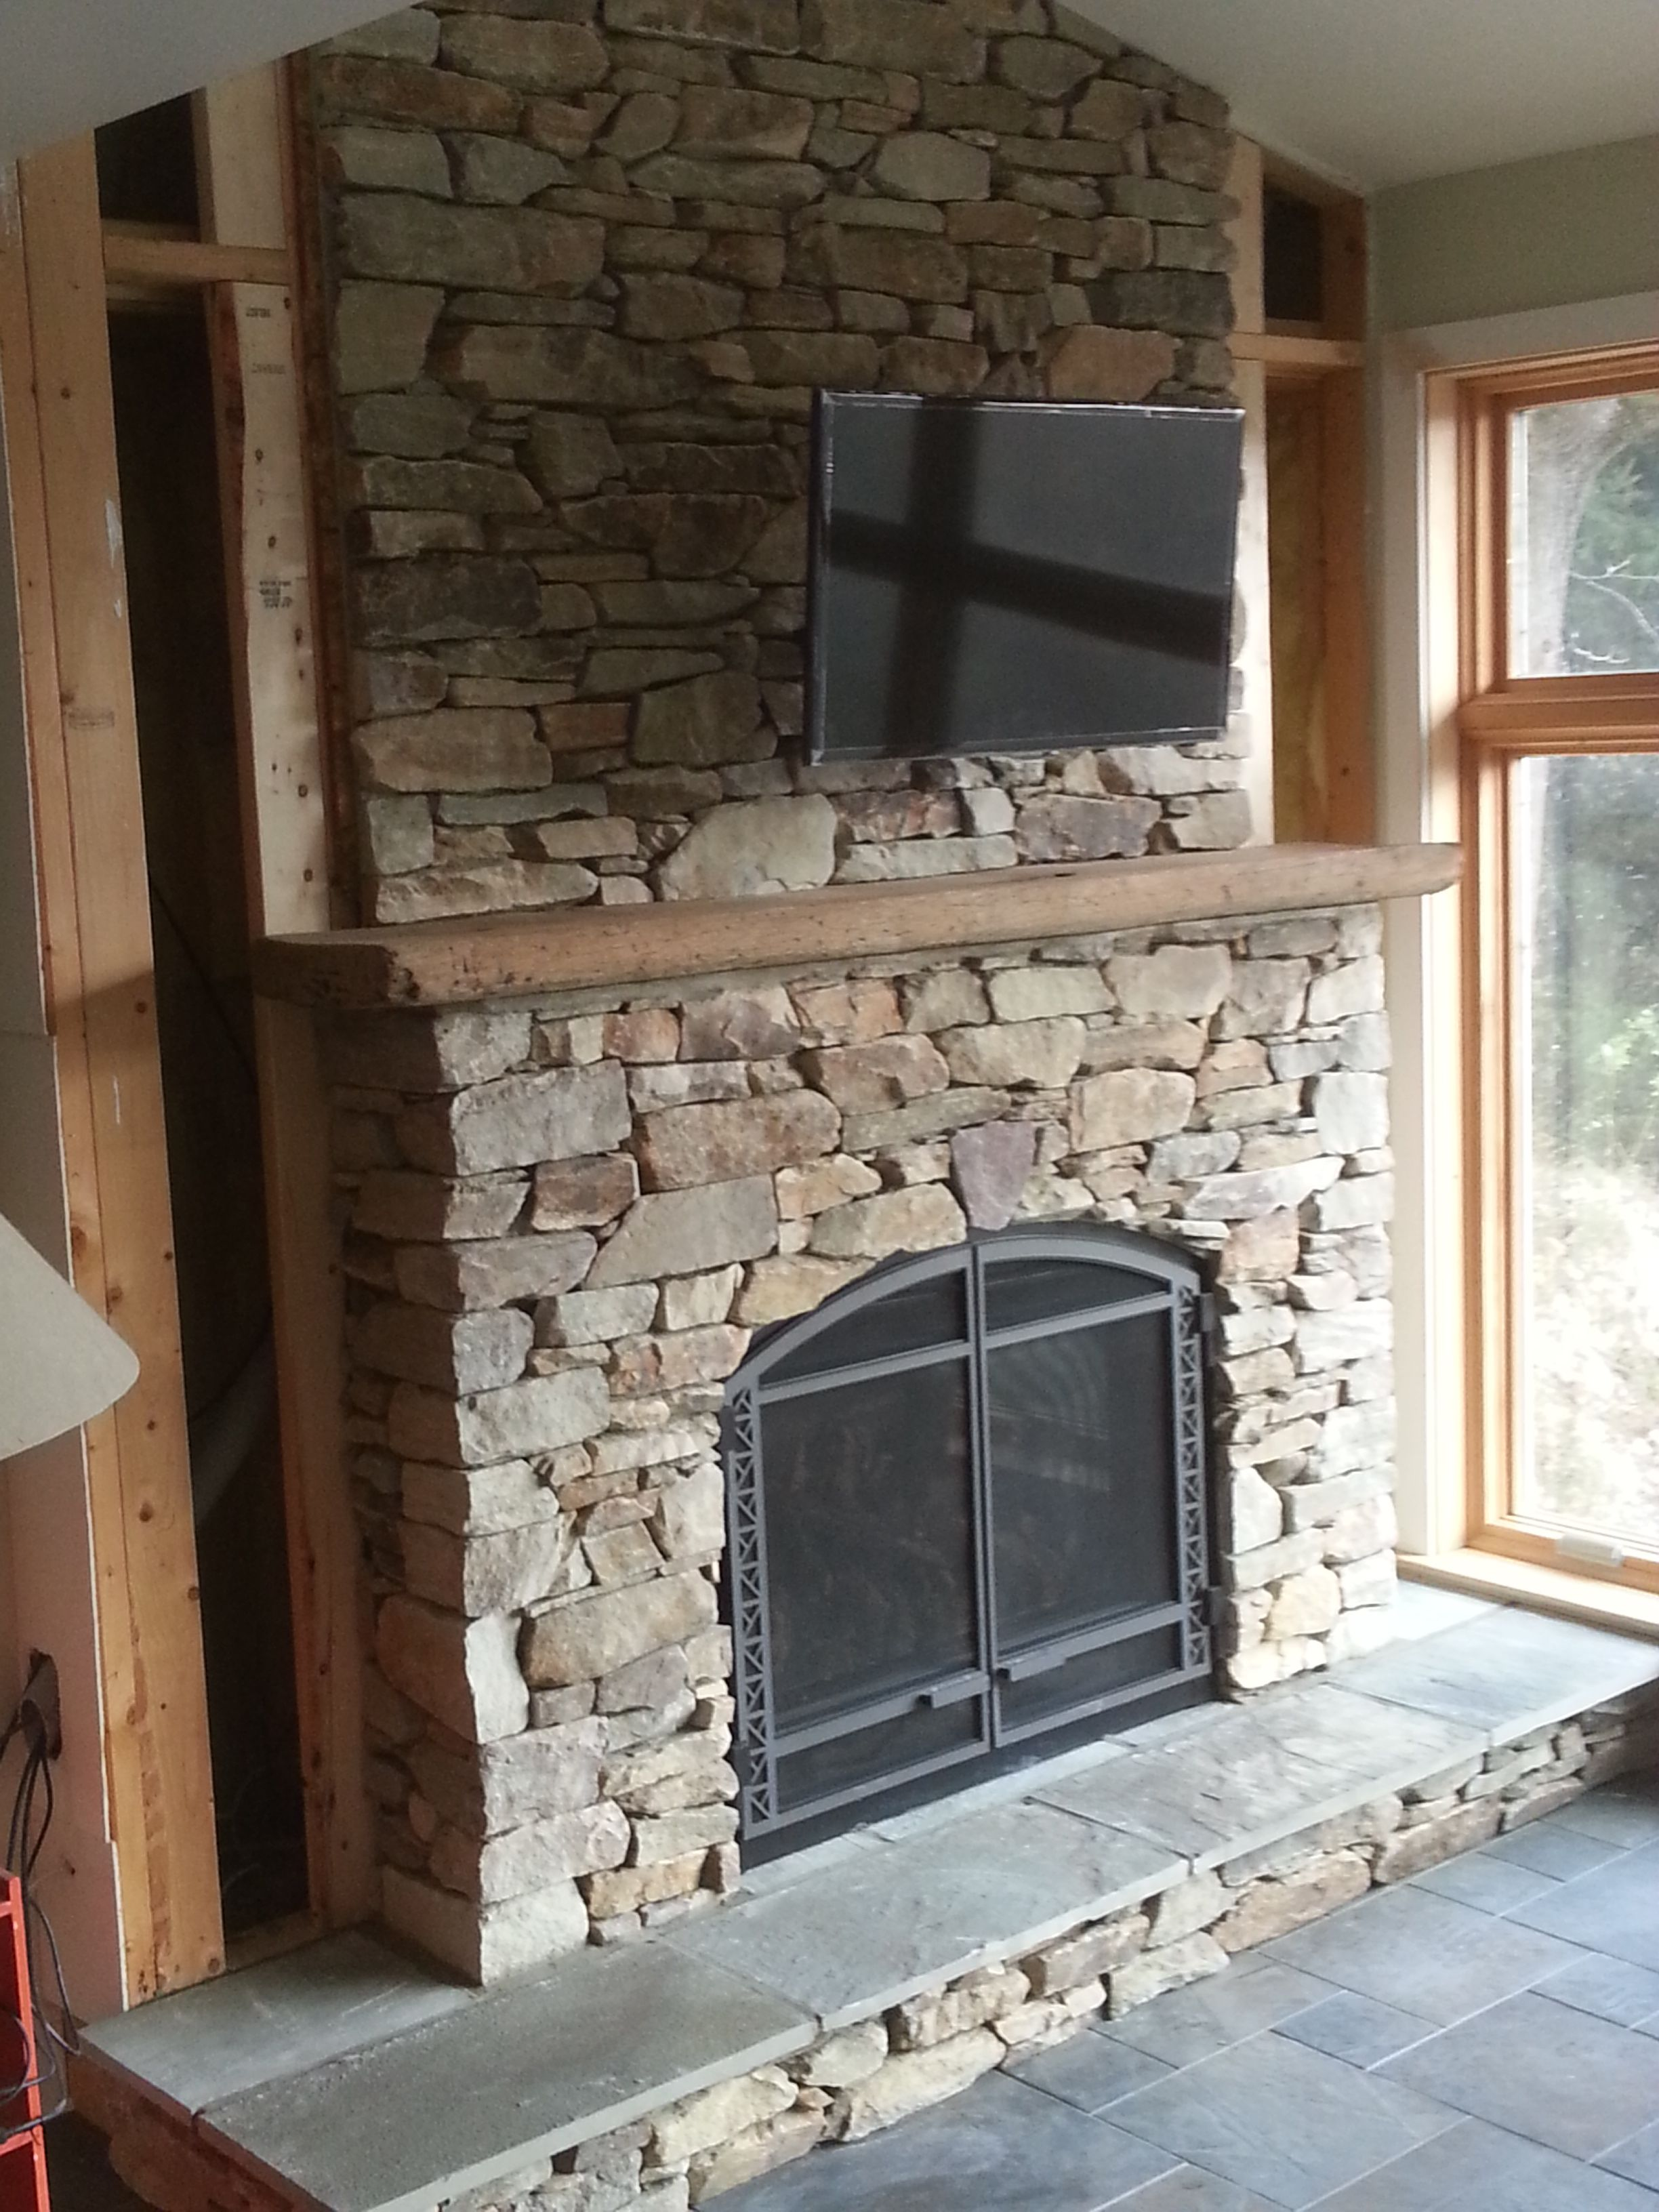 Fireplace Surround Using Natural Veneer Stone With A Cut Bluestone Hearth And Chestnut Barn Beam